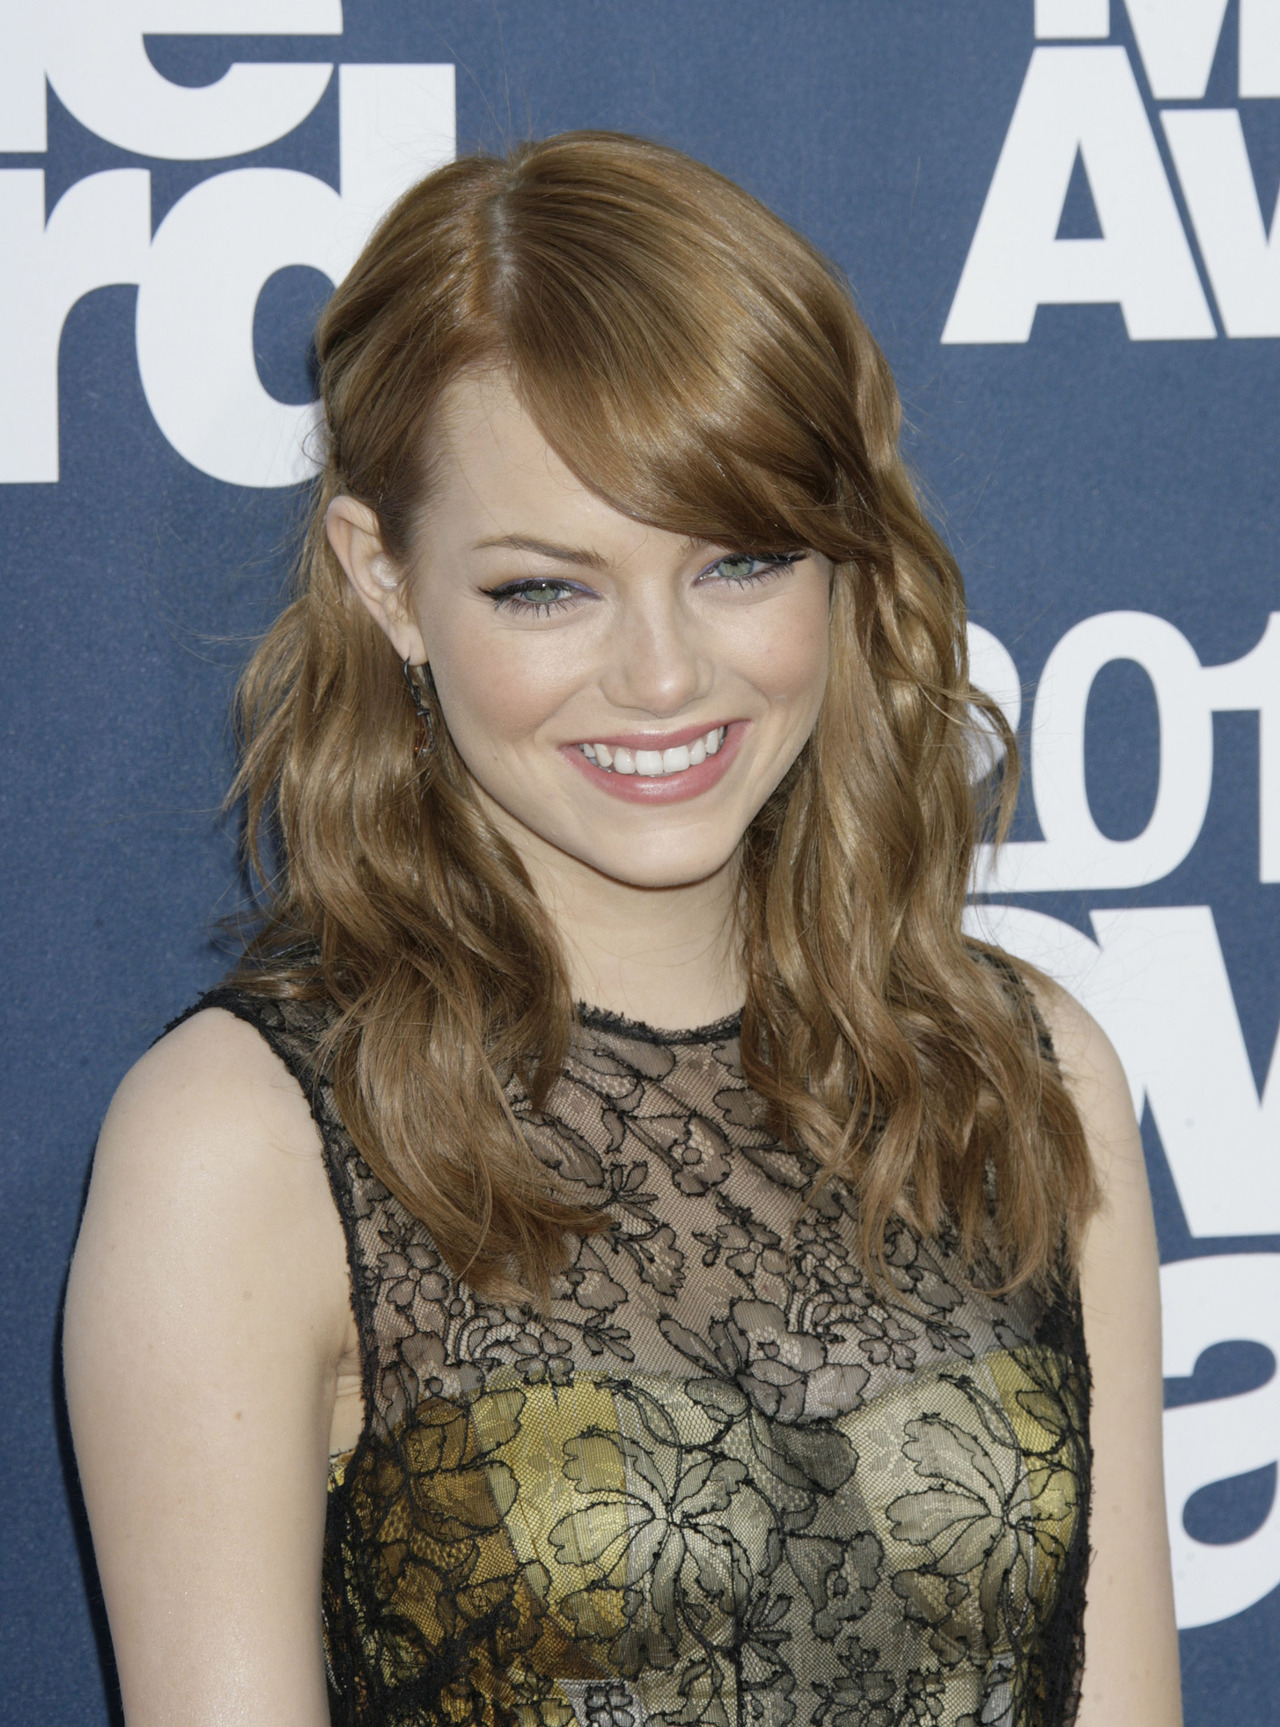 Emma Stone - 2011 Mtv Movie Awards In Los Angeles 05.06.11Emma Stone - Source : SwaGirl.com